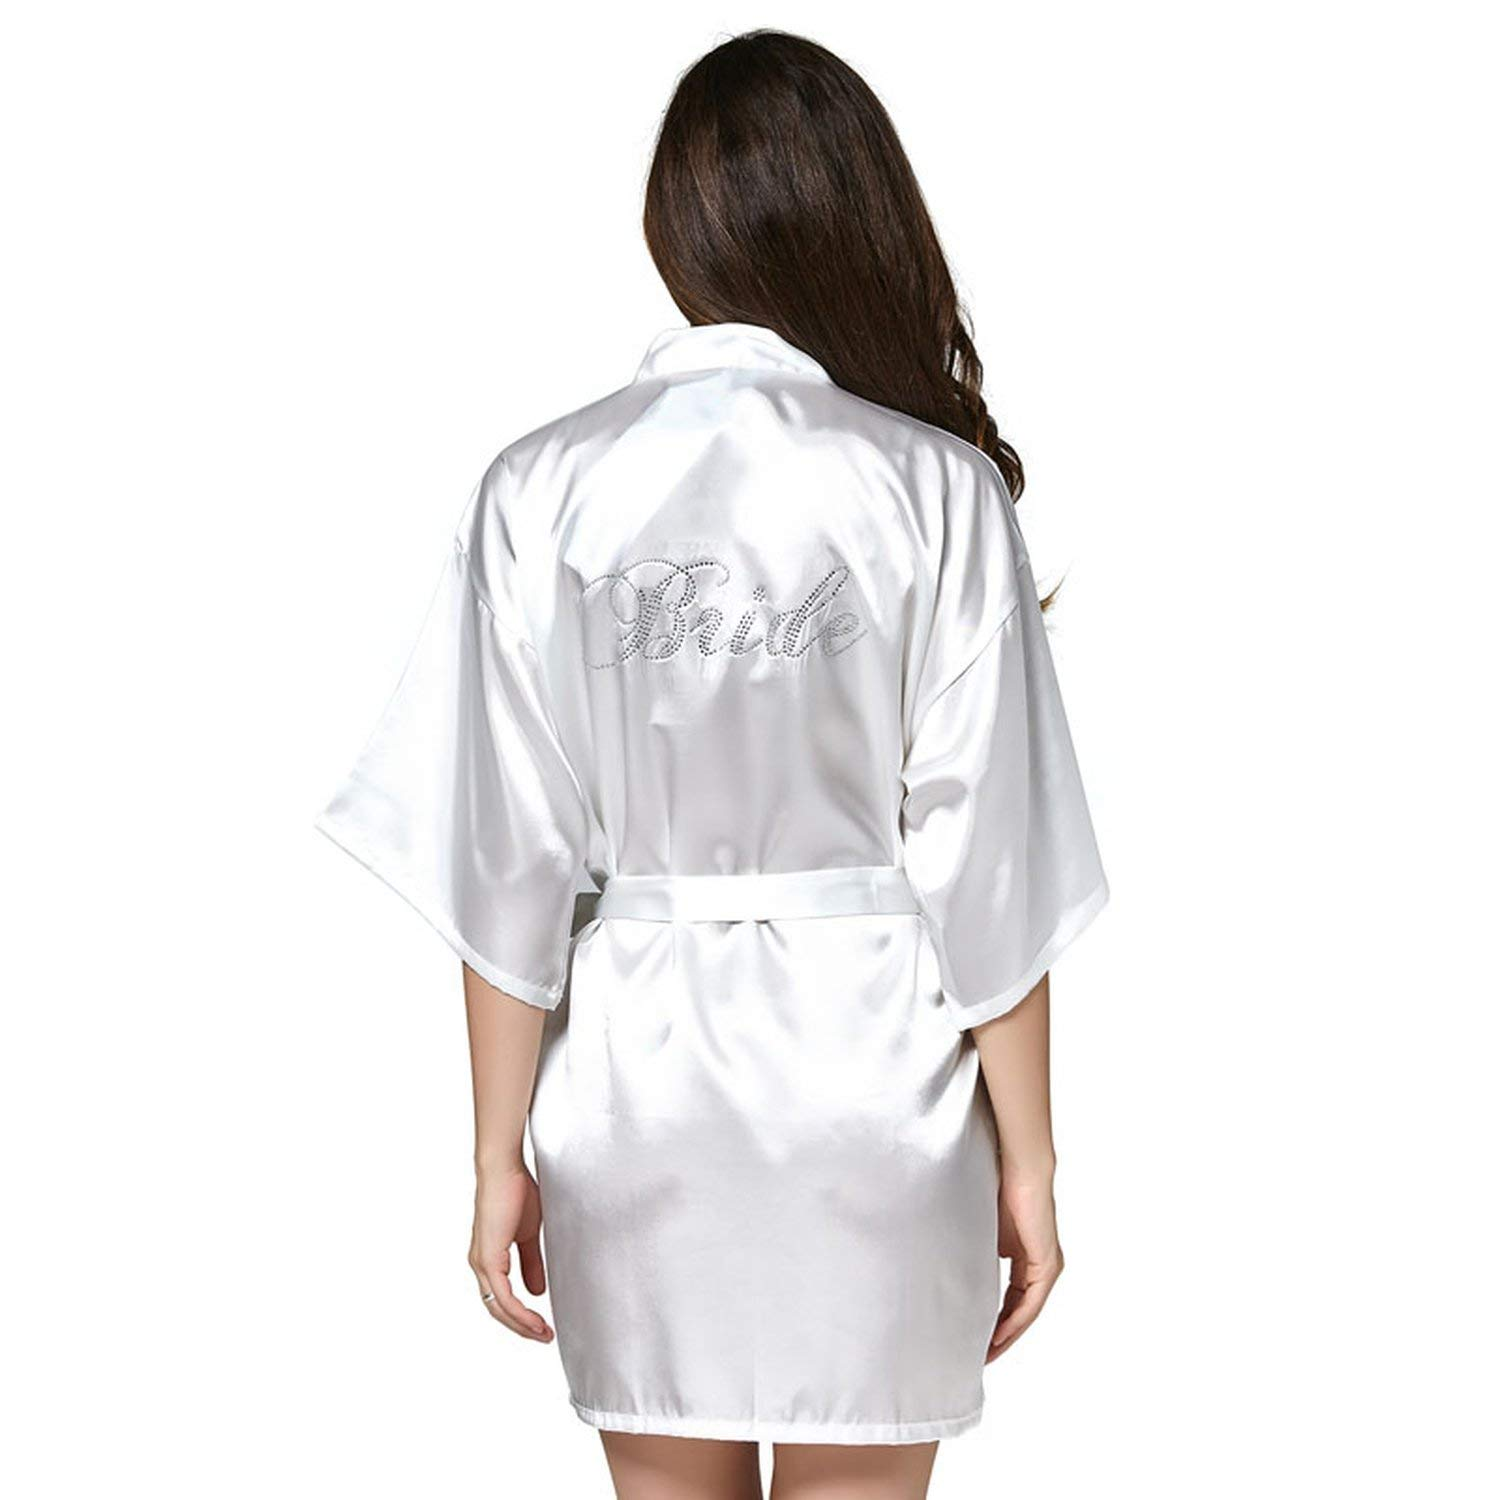 99c63a051a Get Quotations · Unique-Shop Women Bathrobe Robes Kimono Pajamas Gowns Women  Home Robes Clothes Silk White Dress